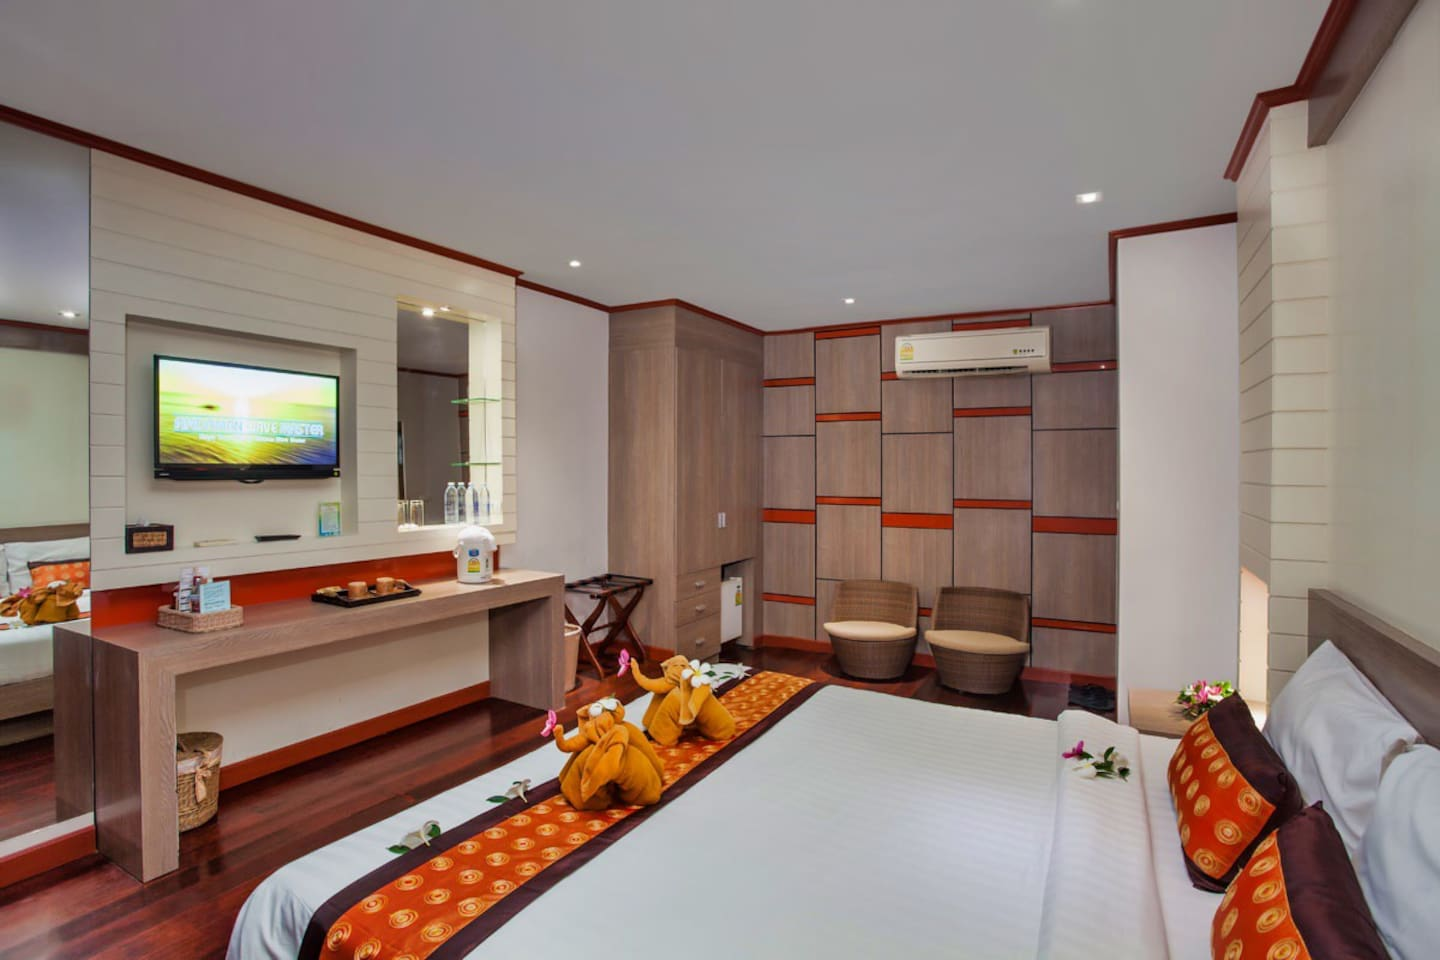 Bedroom with television, airconditioning, seat area and mini fridge.